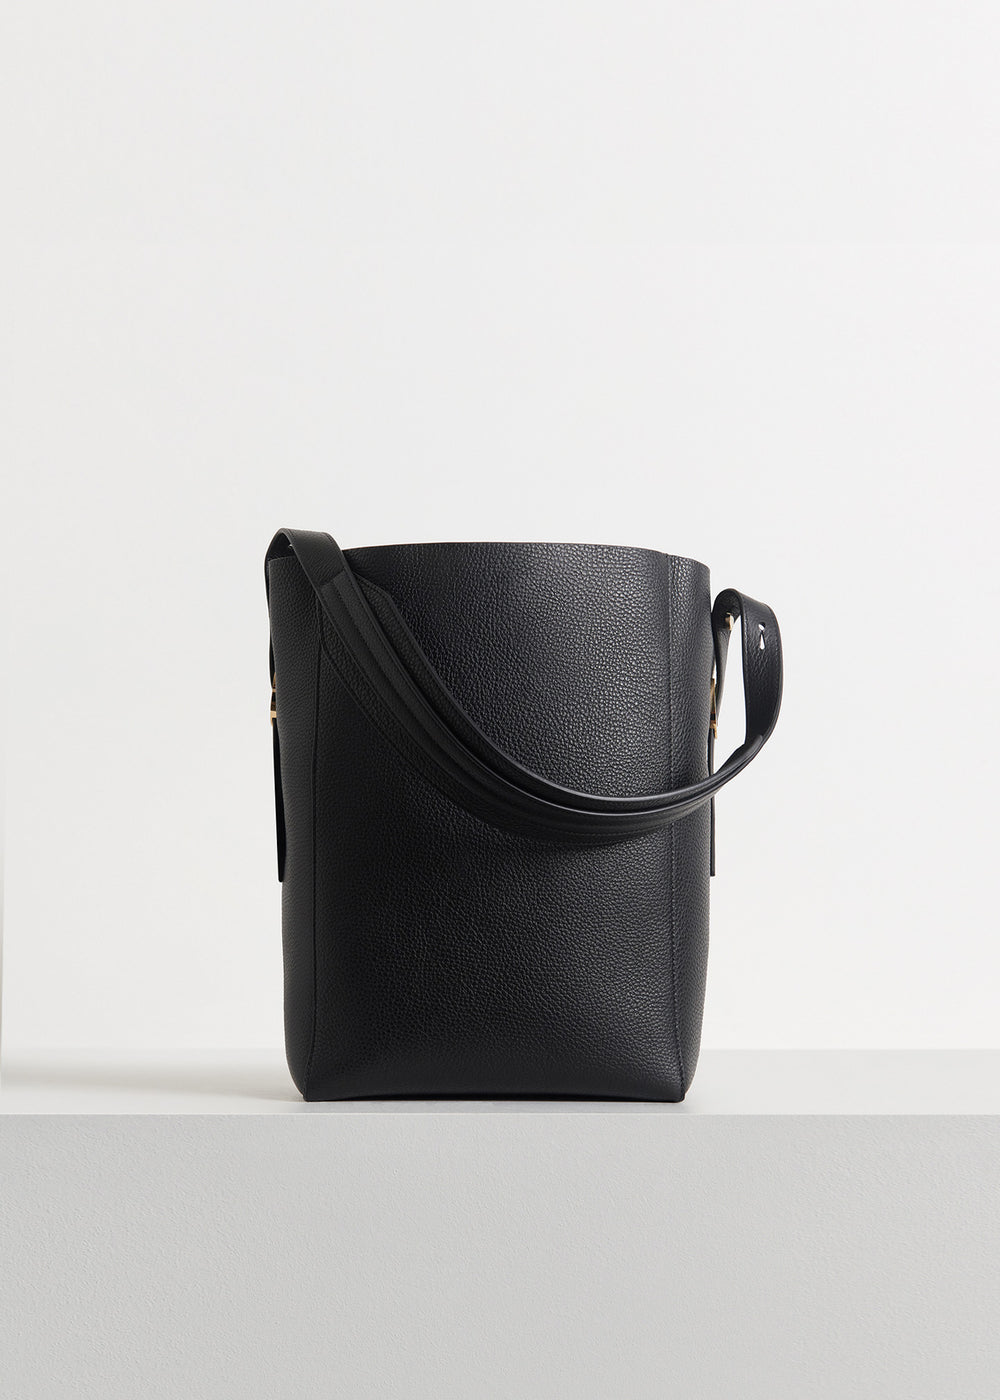 Small Classic Tote in Pebbled Leather in Black by Co Collections